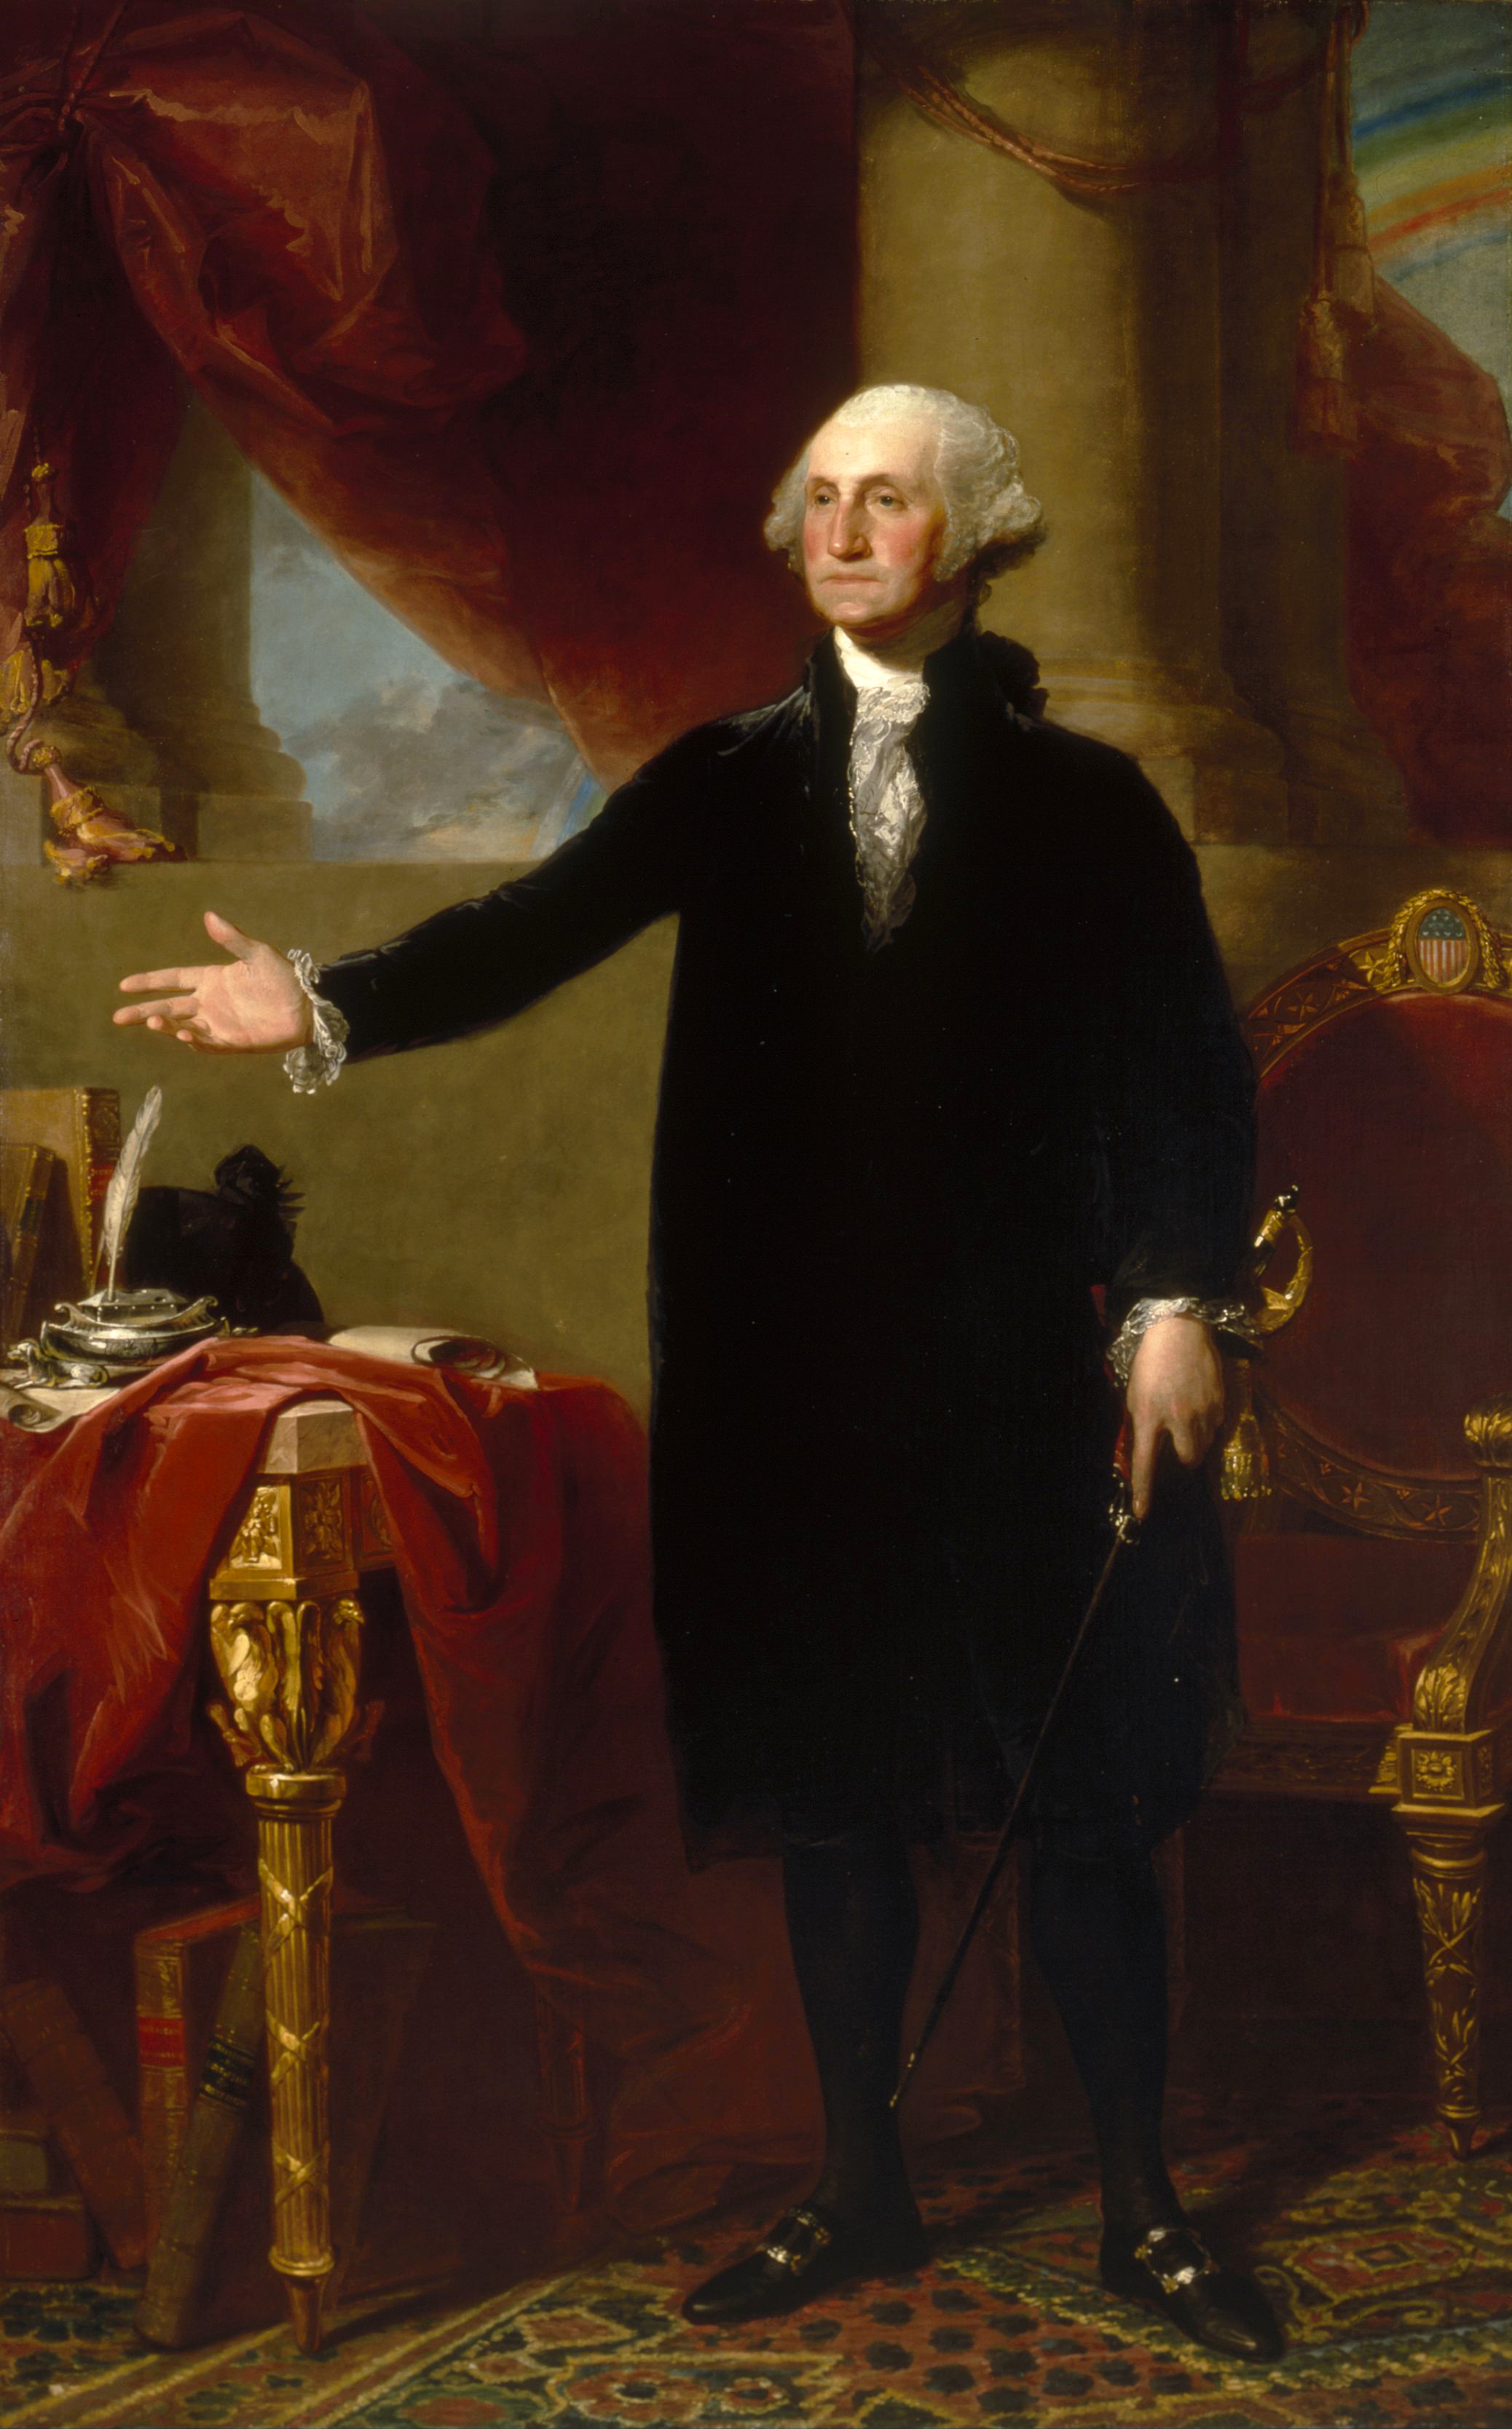 http://images2.wikia.nocookie.net/__cb20120827235024/thenewsroom/images/1/12/Gilbert_Stuart%2C_George_Washington_%28Lansdowne_portrait%2C_1796%29.jpg